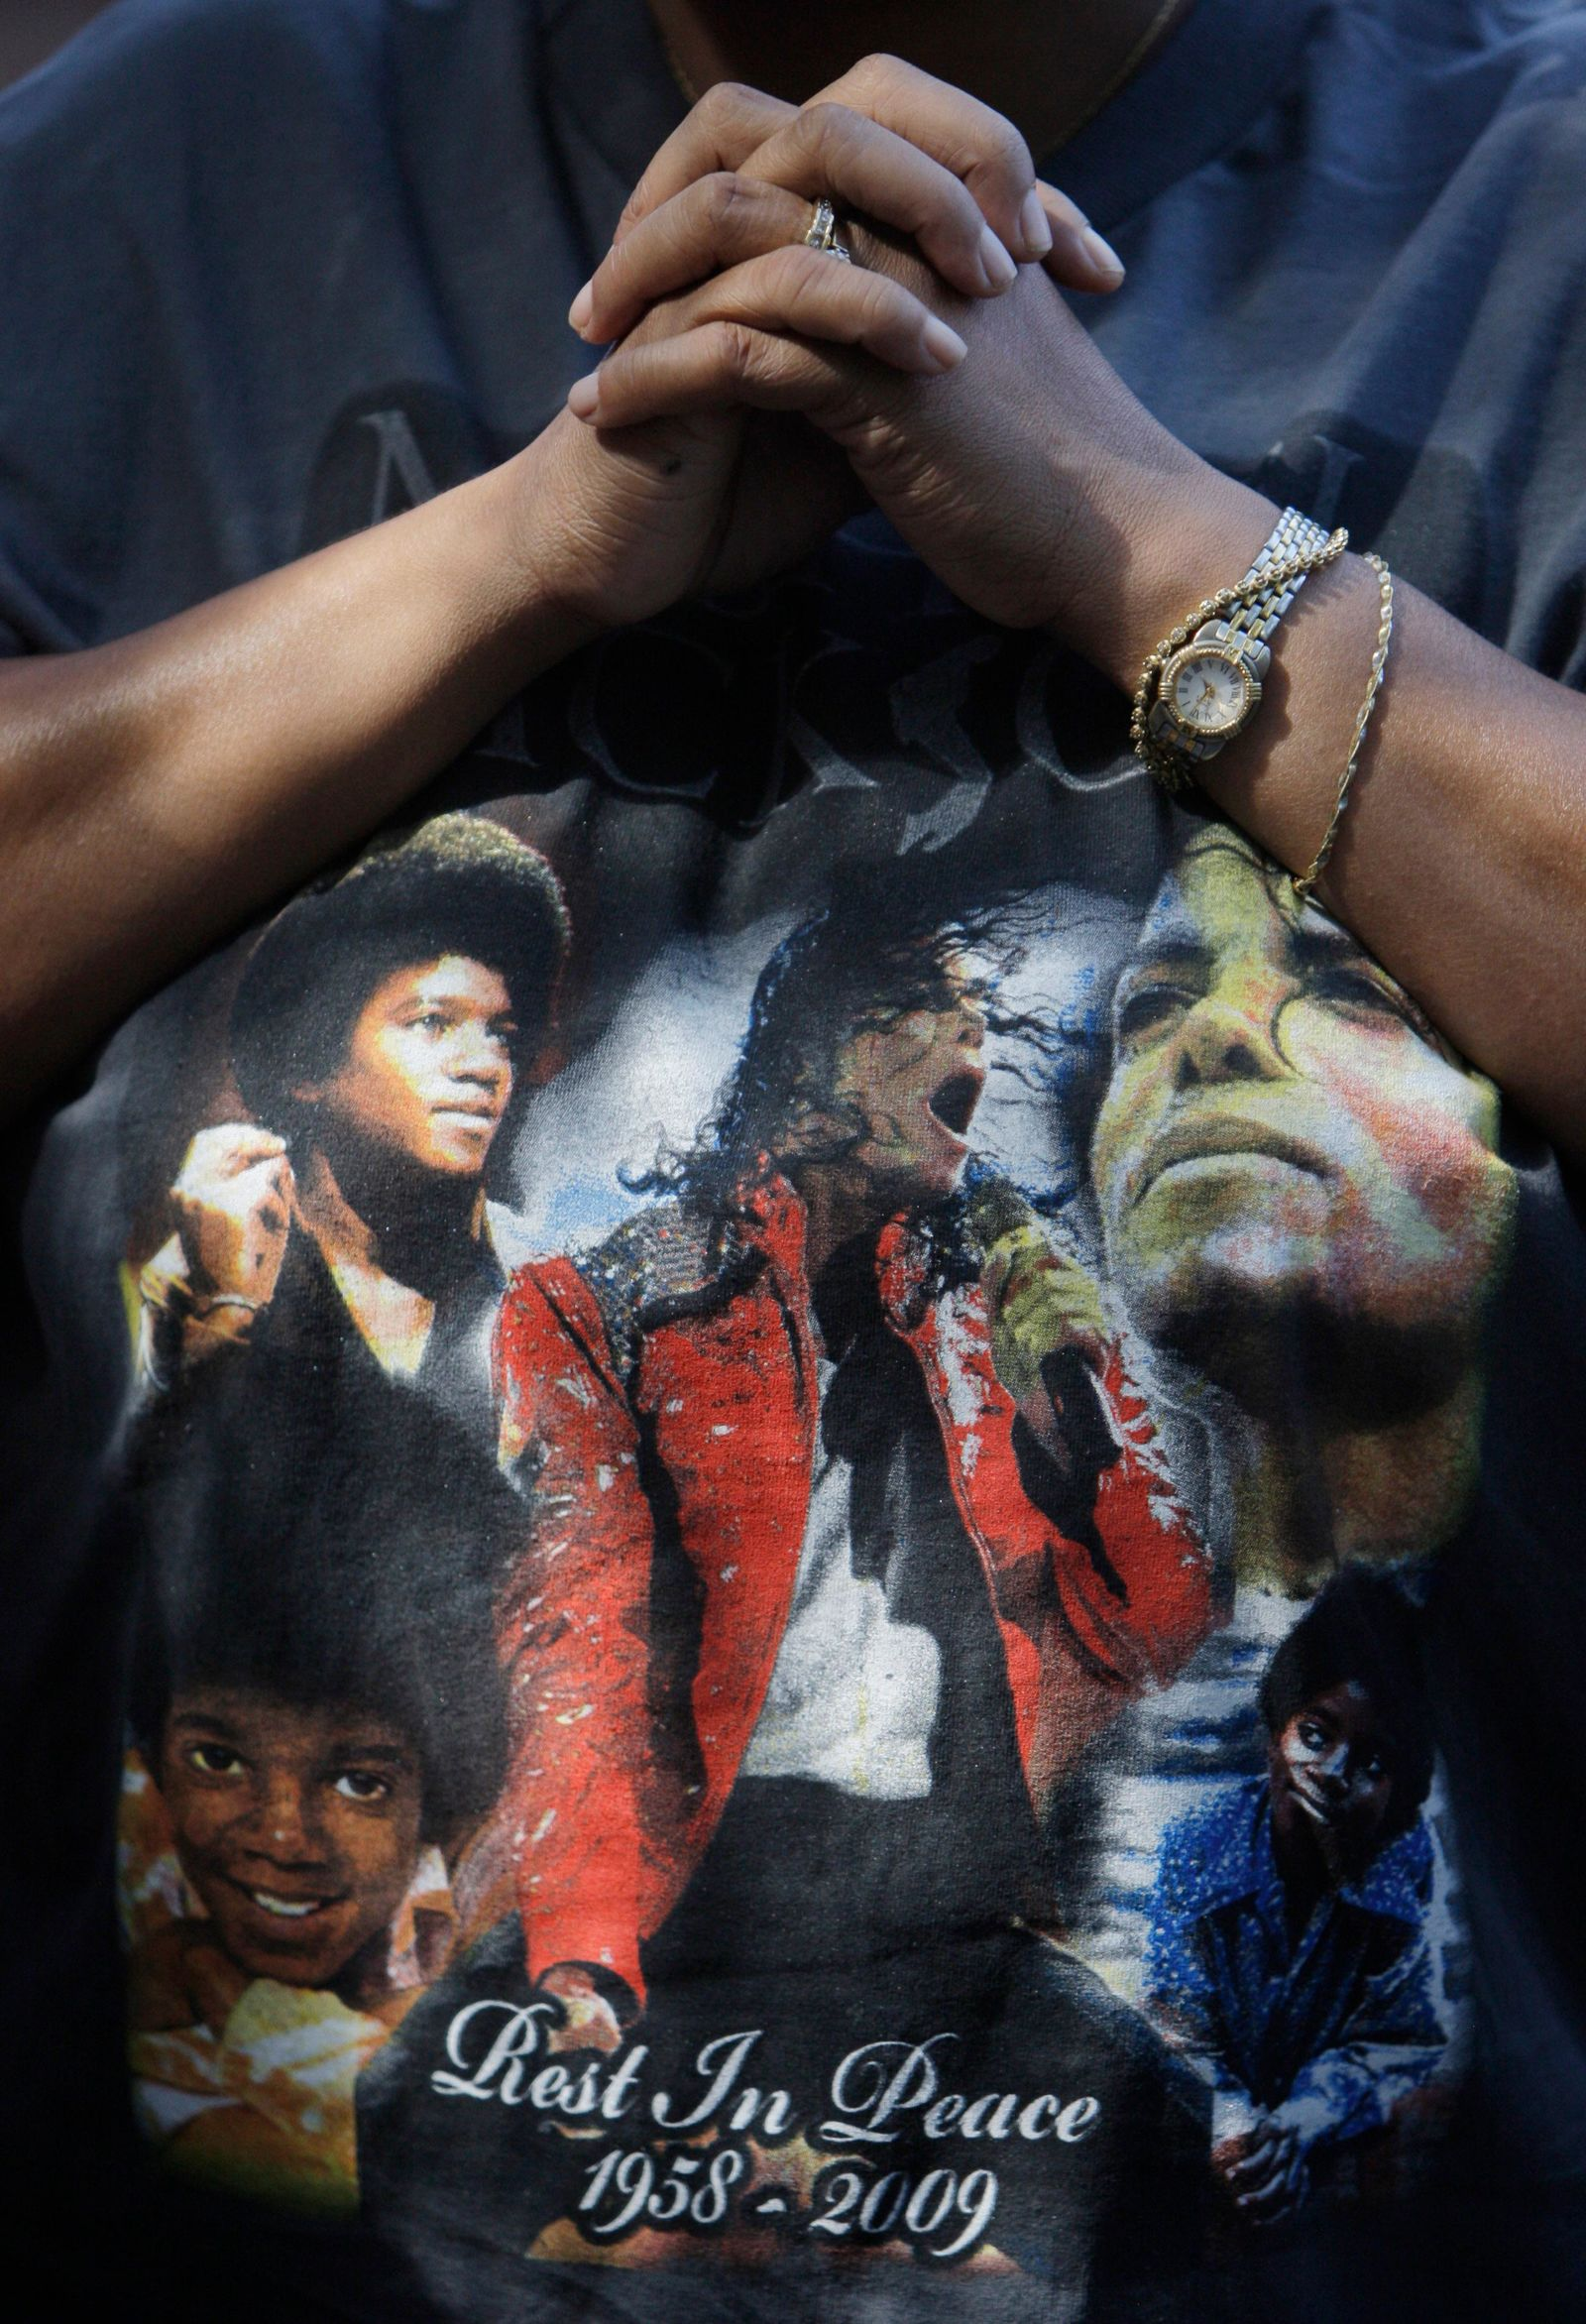 FILE - This June 30, 2009 file photo shows a fan wearing a Michael Jackson T-shirt at a makeshift memorial for the late pop star outside the Jackson family home in Encino section of Los Angeles. Tuesday, June 25, 2019, marks the tenth anniversary of Jackson's death. (AP Photo/Jae C. Hong, File)